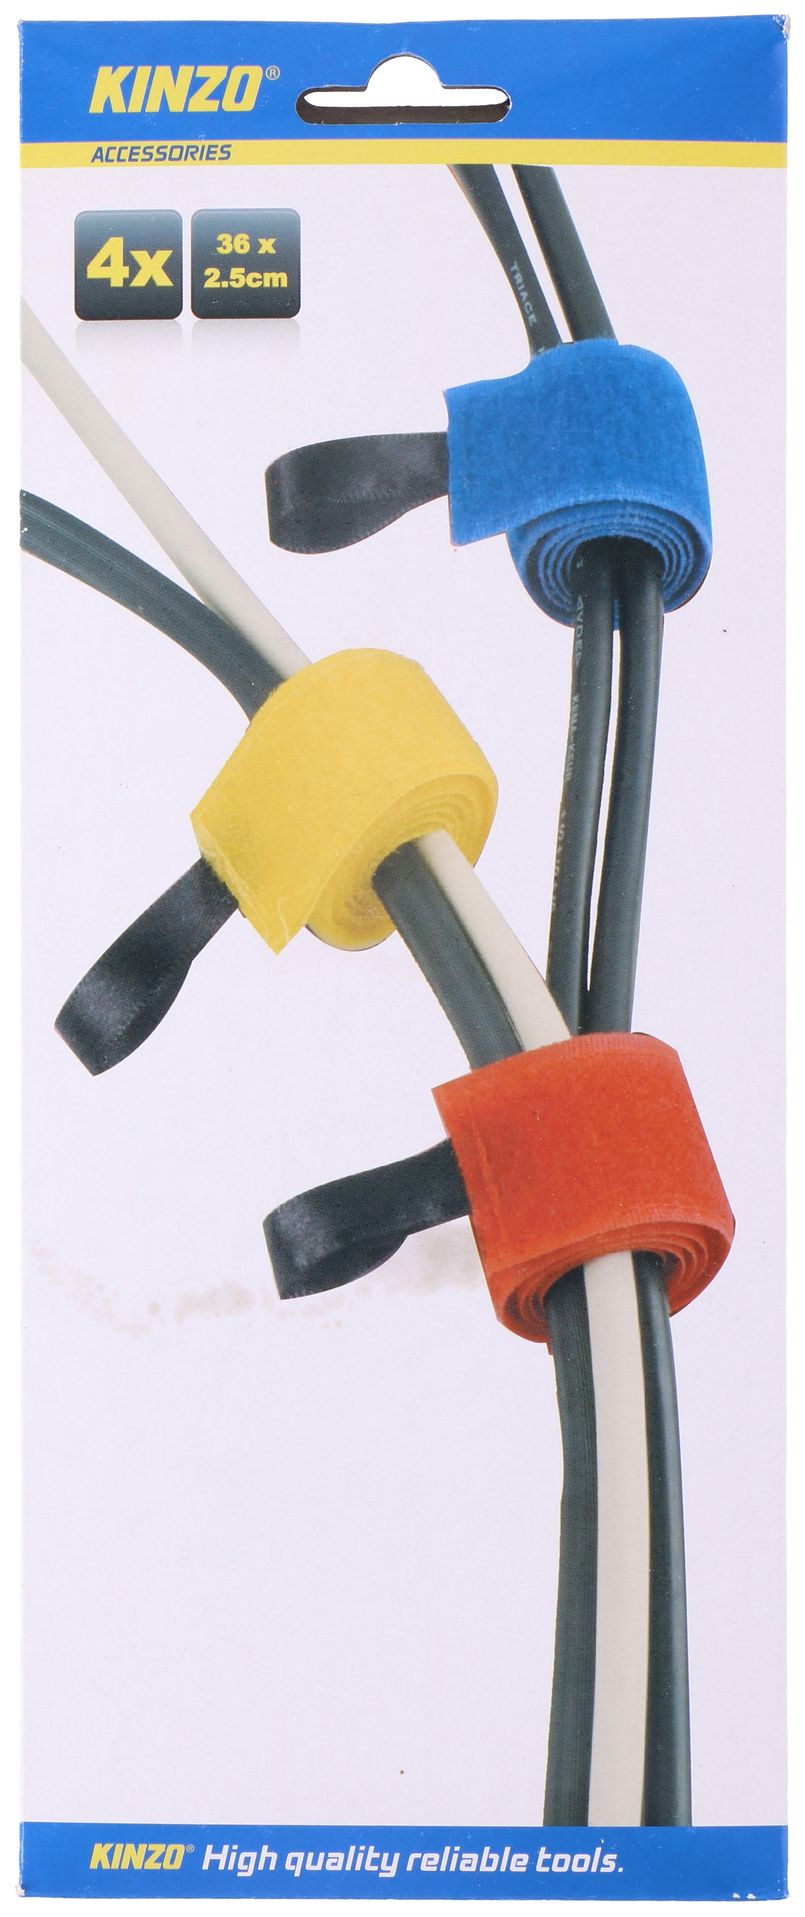 Cable ties 36x2.5cm - 4 pieces package ED3394